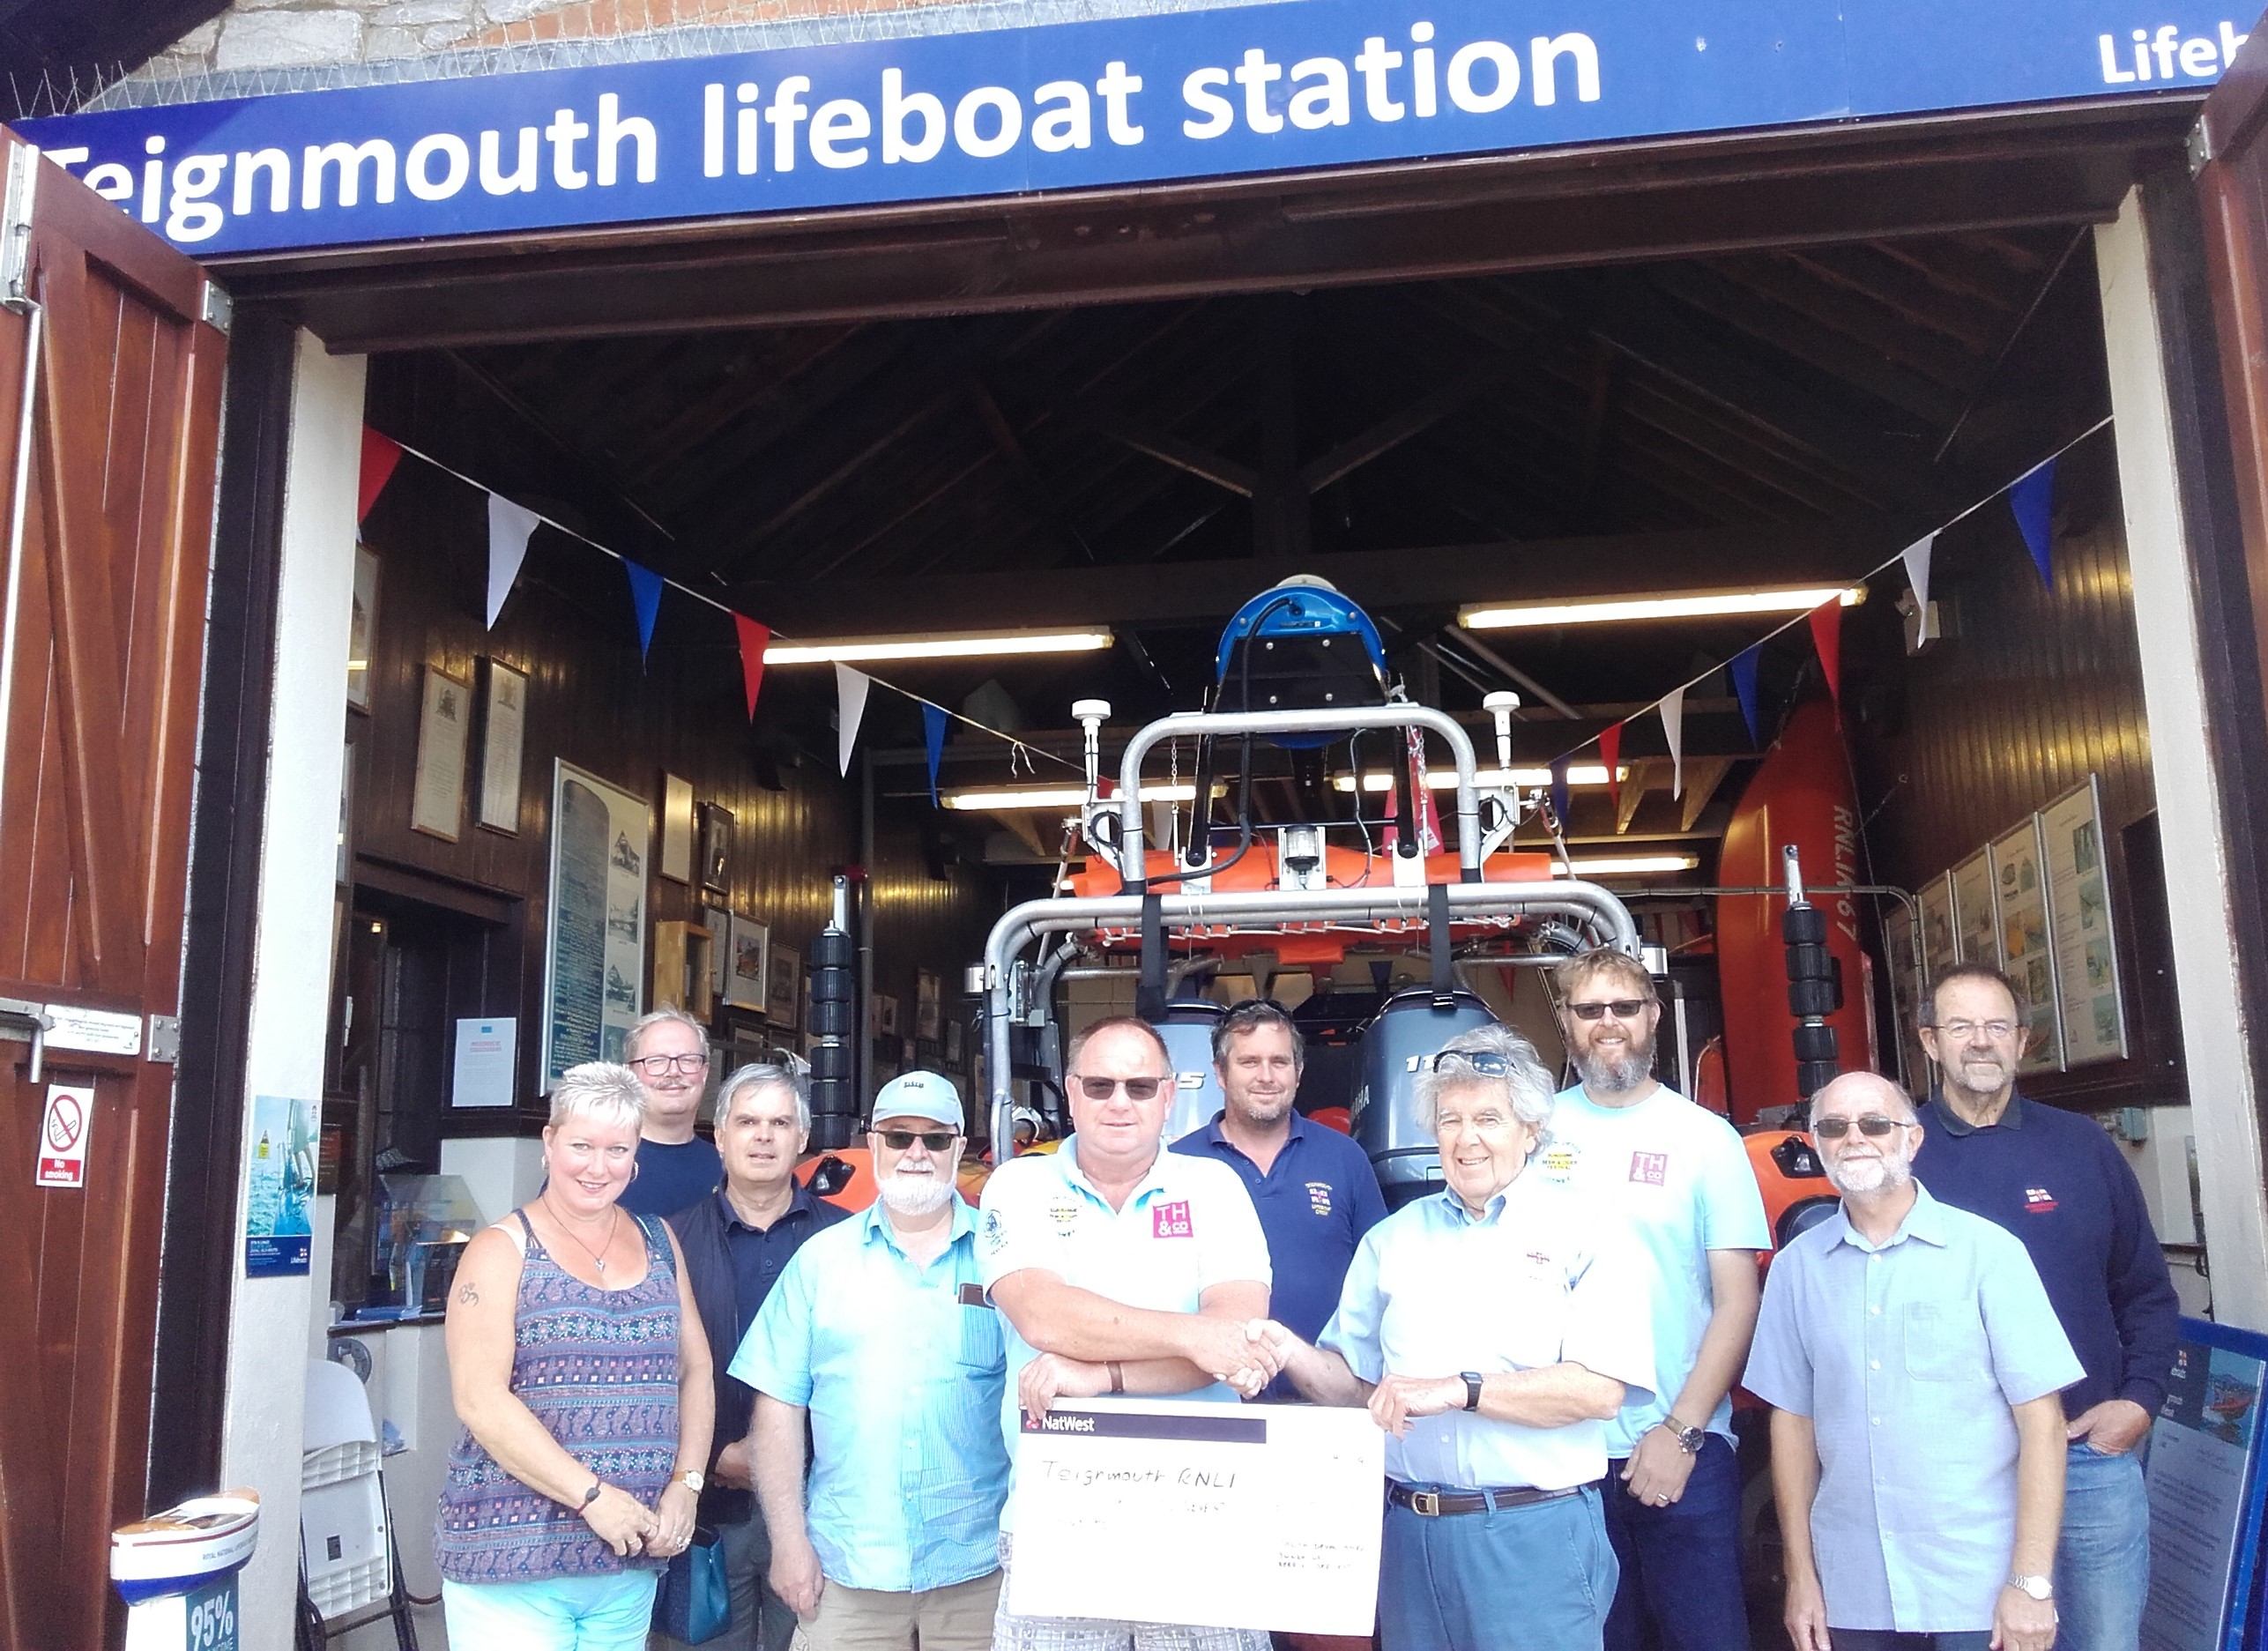 Presentation of donation at Teignmouth RNLI lifeboat station